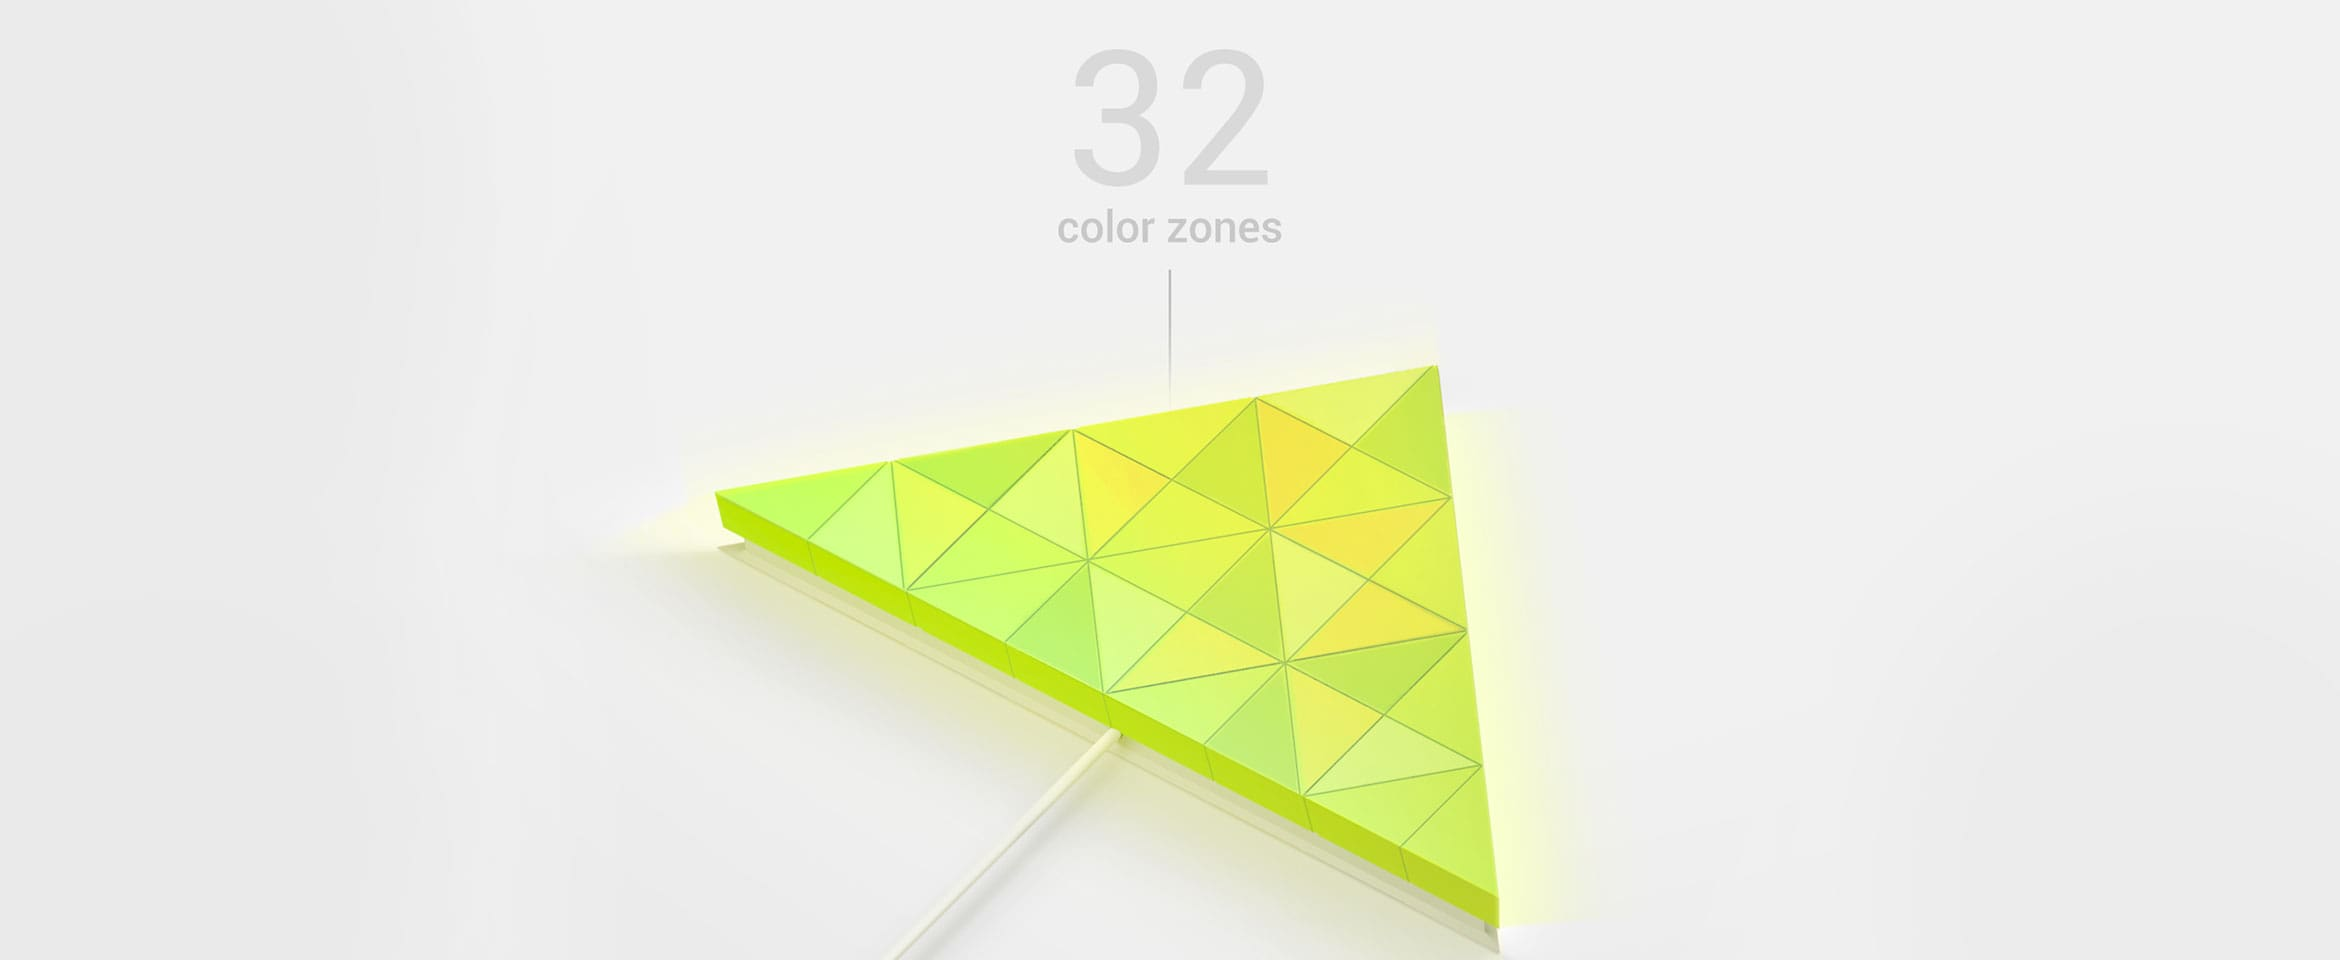 LaMetric SKY smart light surface with 32 color zones